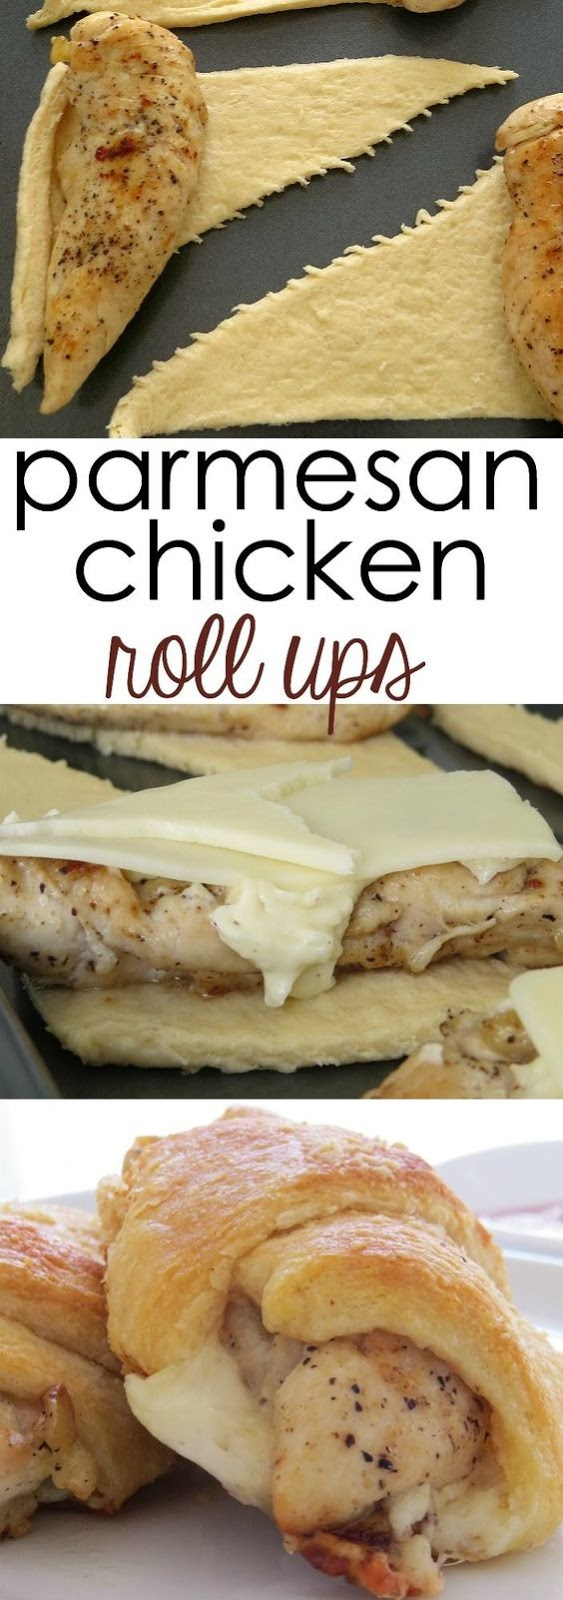 CHICKEN ROLL UPS CRESCENT ROLLS ARE FABULOUS! #parmesan #chicken #chickenrecipes #chickenrolls #dinner #quickdinner #dinnerrecipes